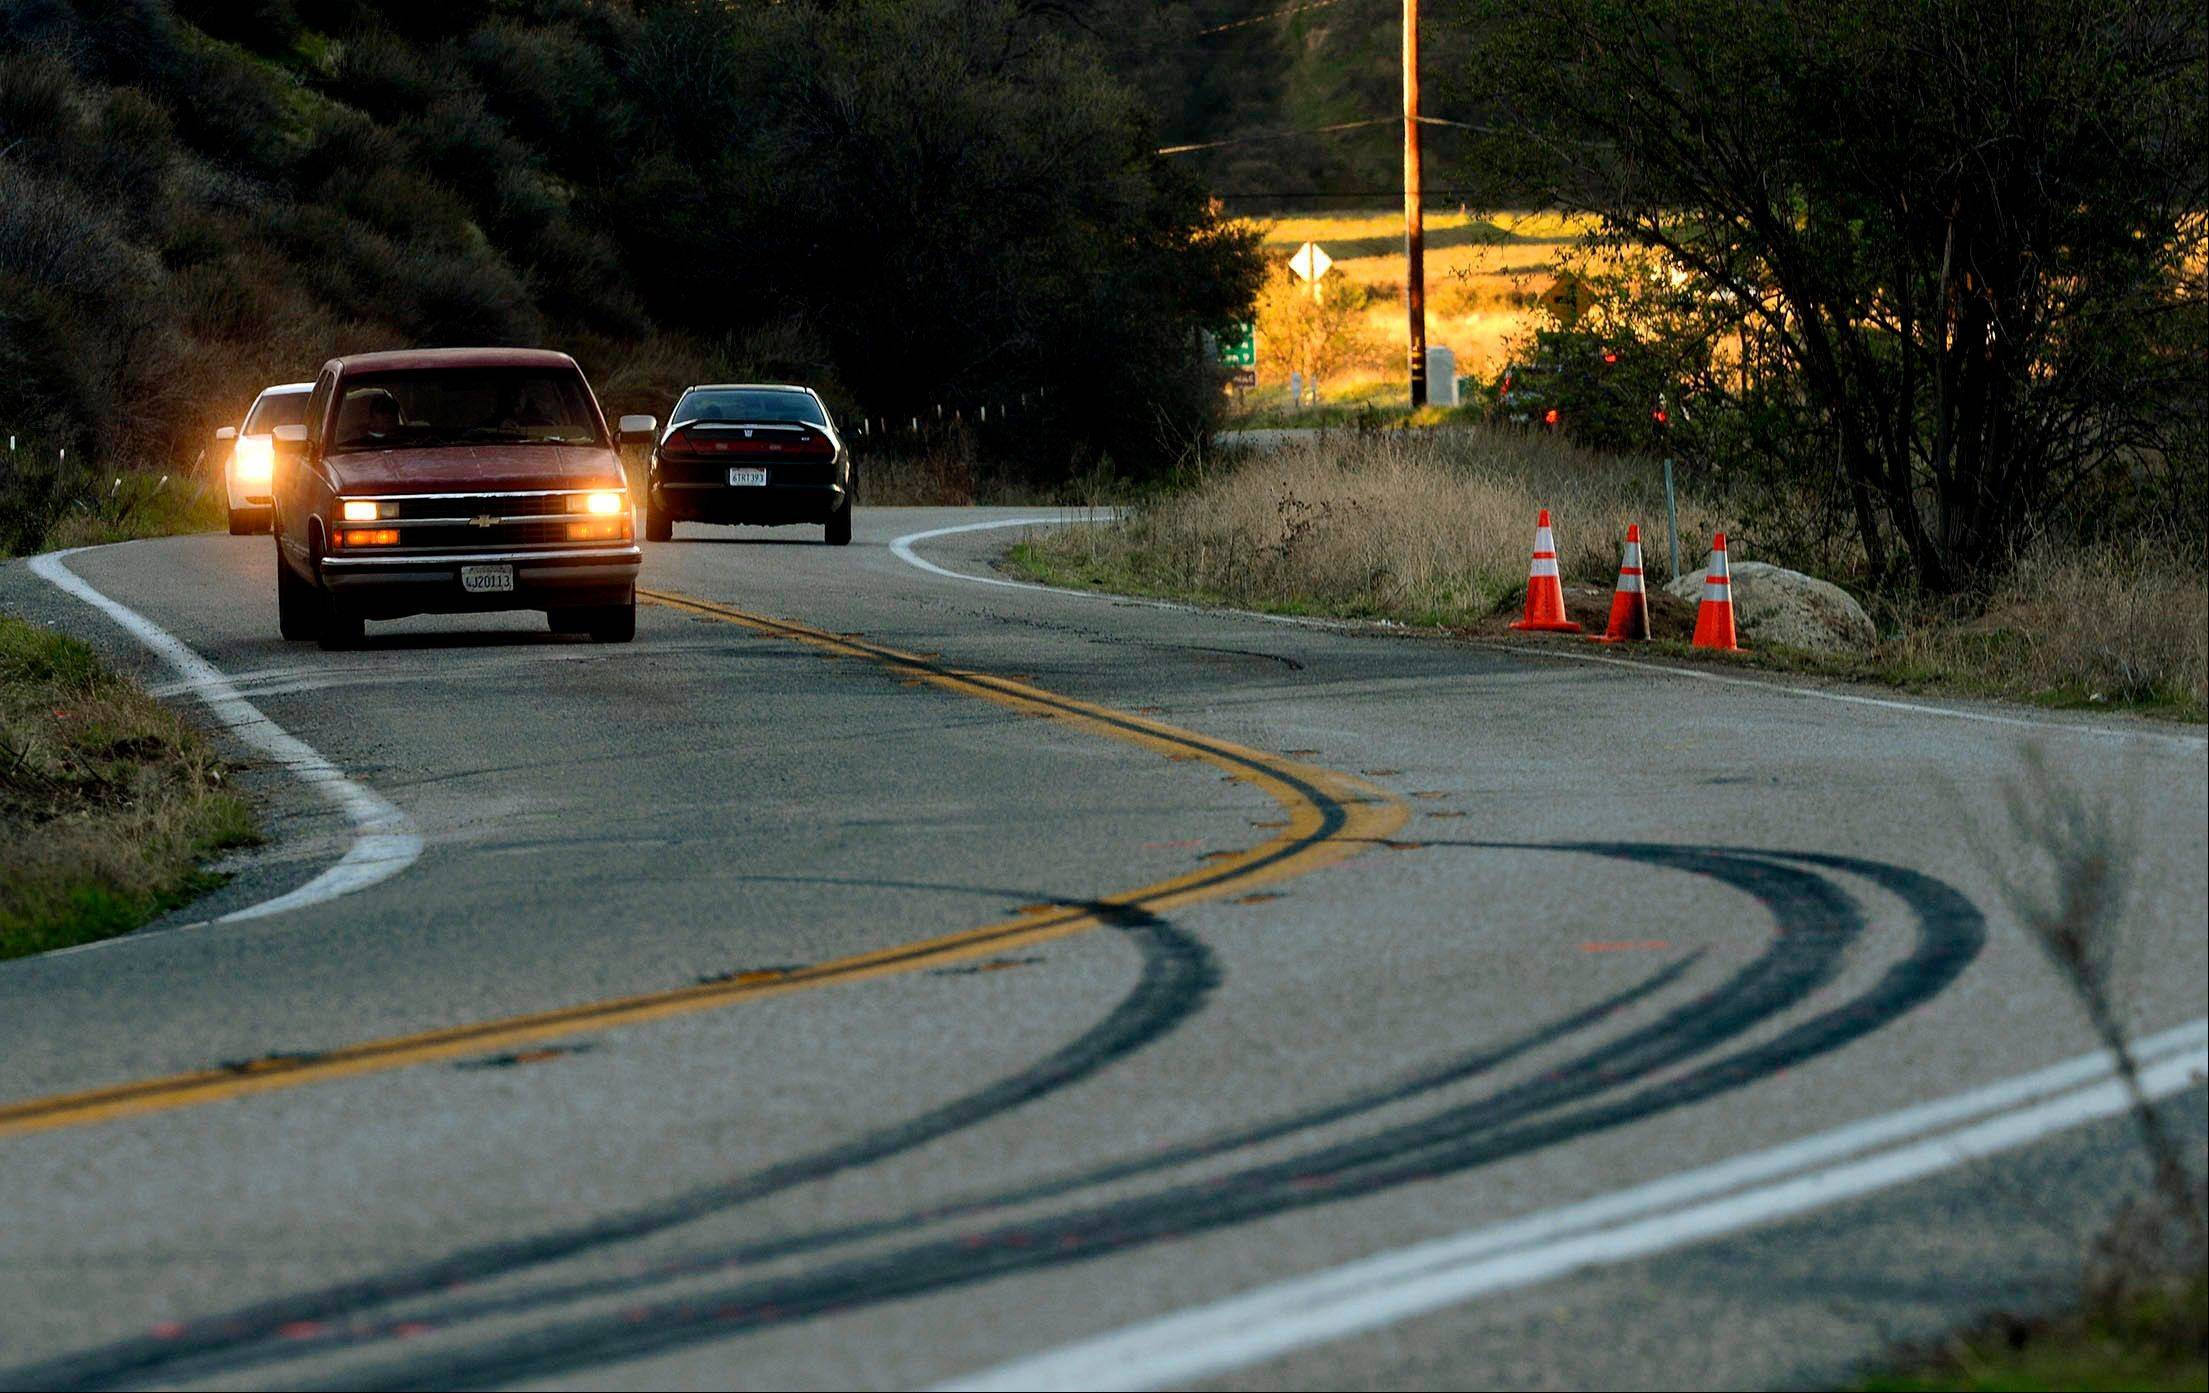 Skid marks from the weekend�s fatal bus cash remain on the pavement as morning commuters drive along Highway 38 for the first time since the road was reopened, Tuesday, Feb. 5, 2013 in Yucaipa, Calif.